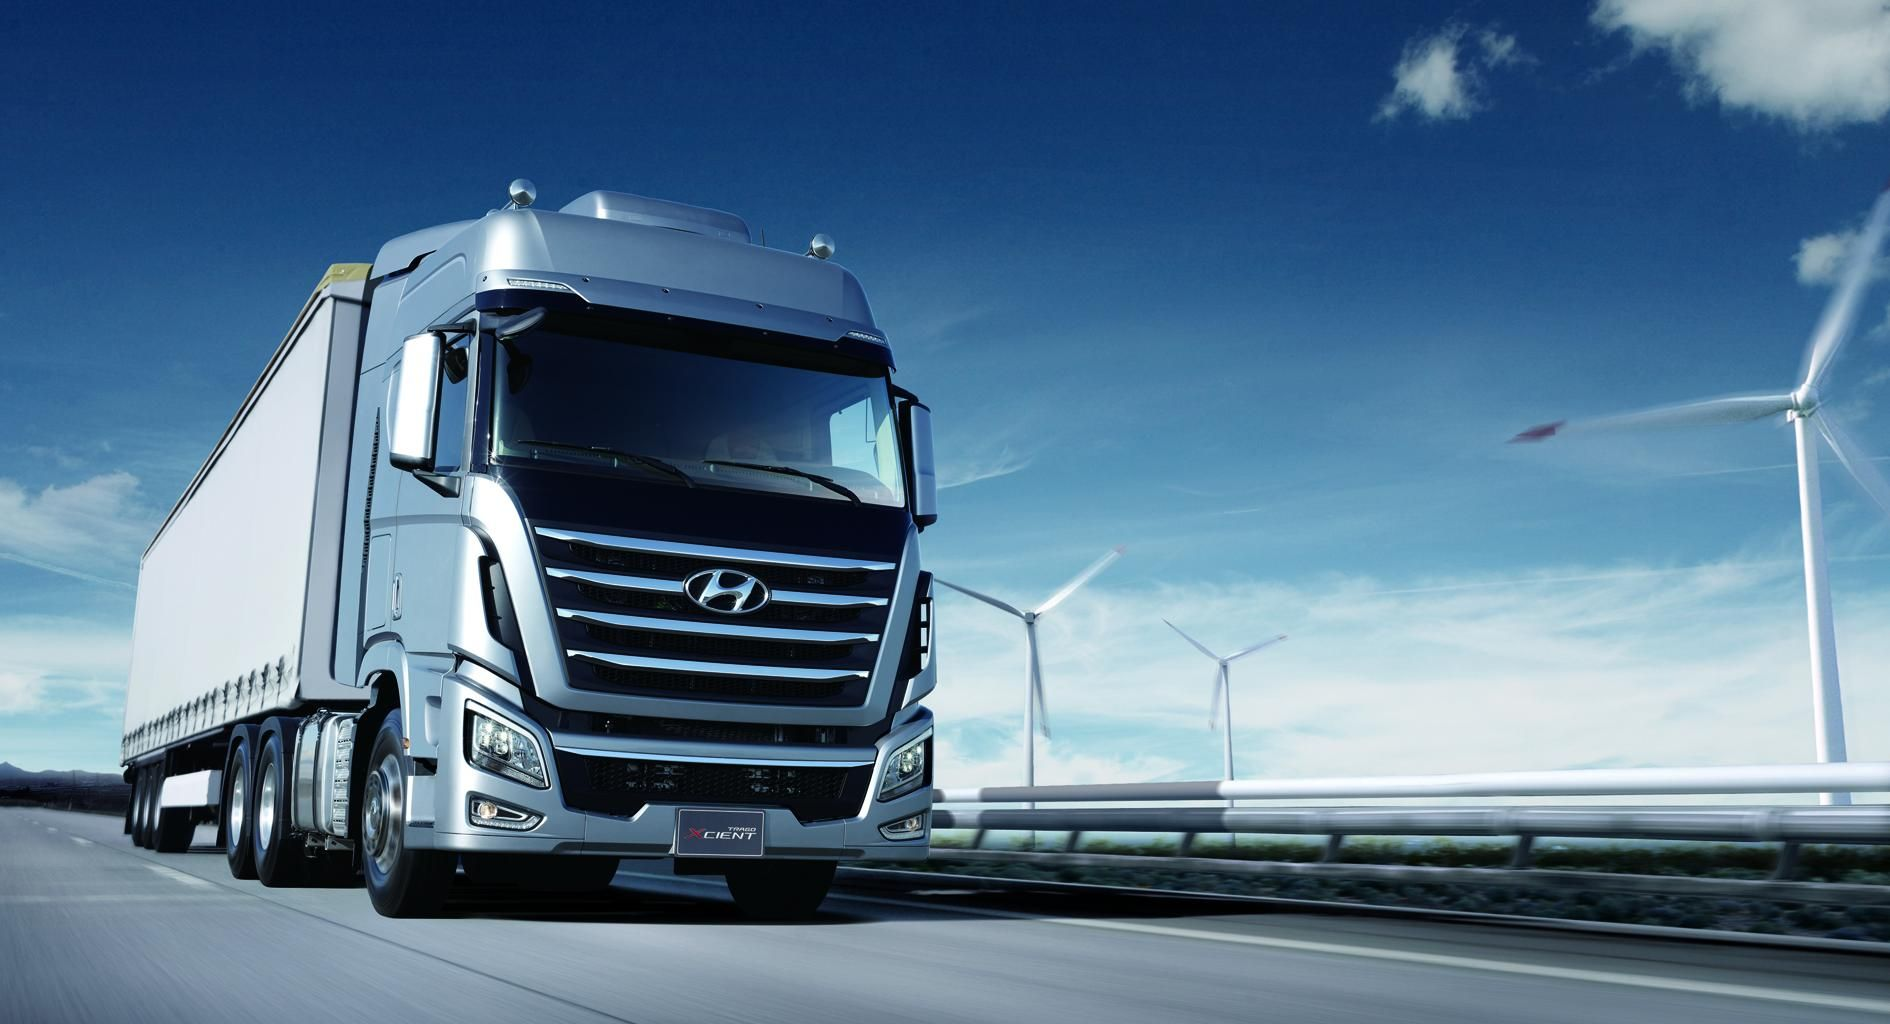 Best Truck Wallpaper Android Apps on Google Play Art Wallpapers